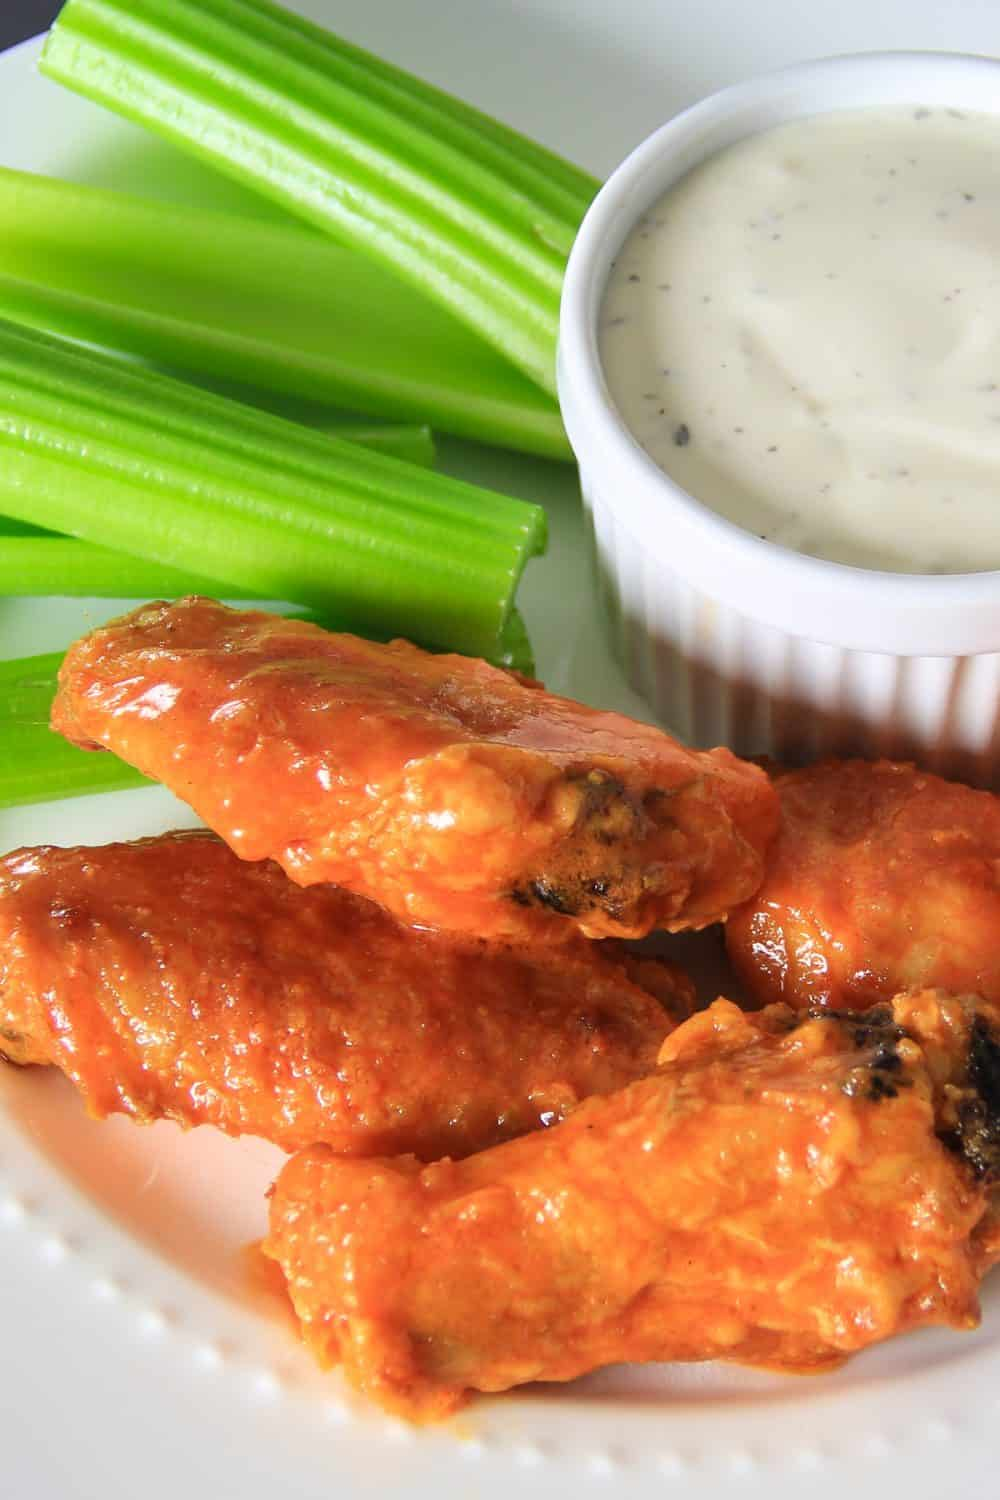 Overhead picture taken of a large white plate with multiple baked chicken wings, slices of celery, and a bowl of dipping sauce